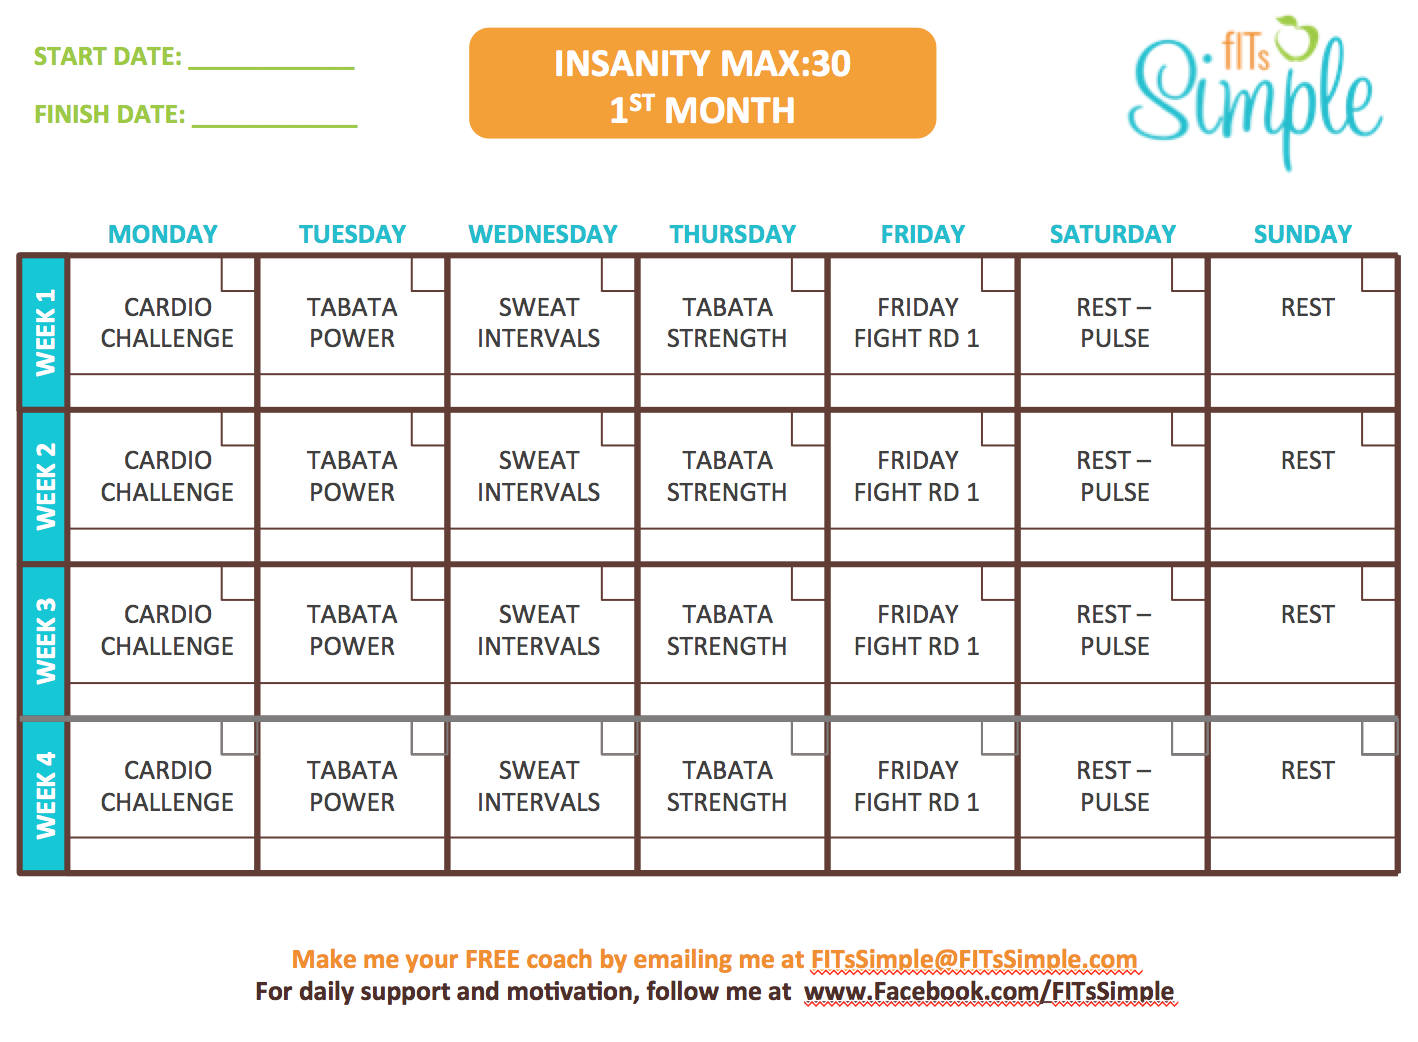 Insanity Max 30 Workout Calendar - FREE DOWNLOAD!! | Max out | Pinterest